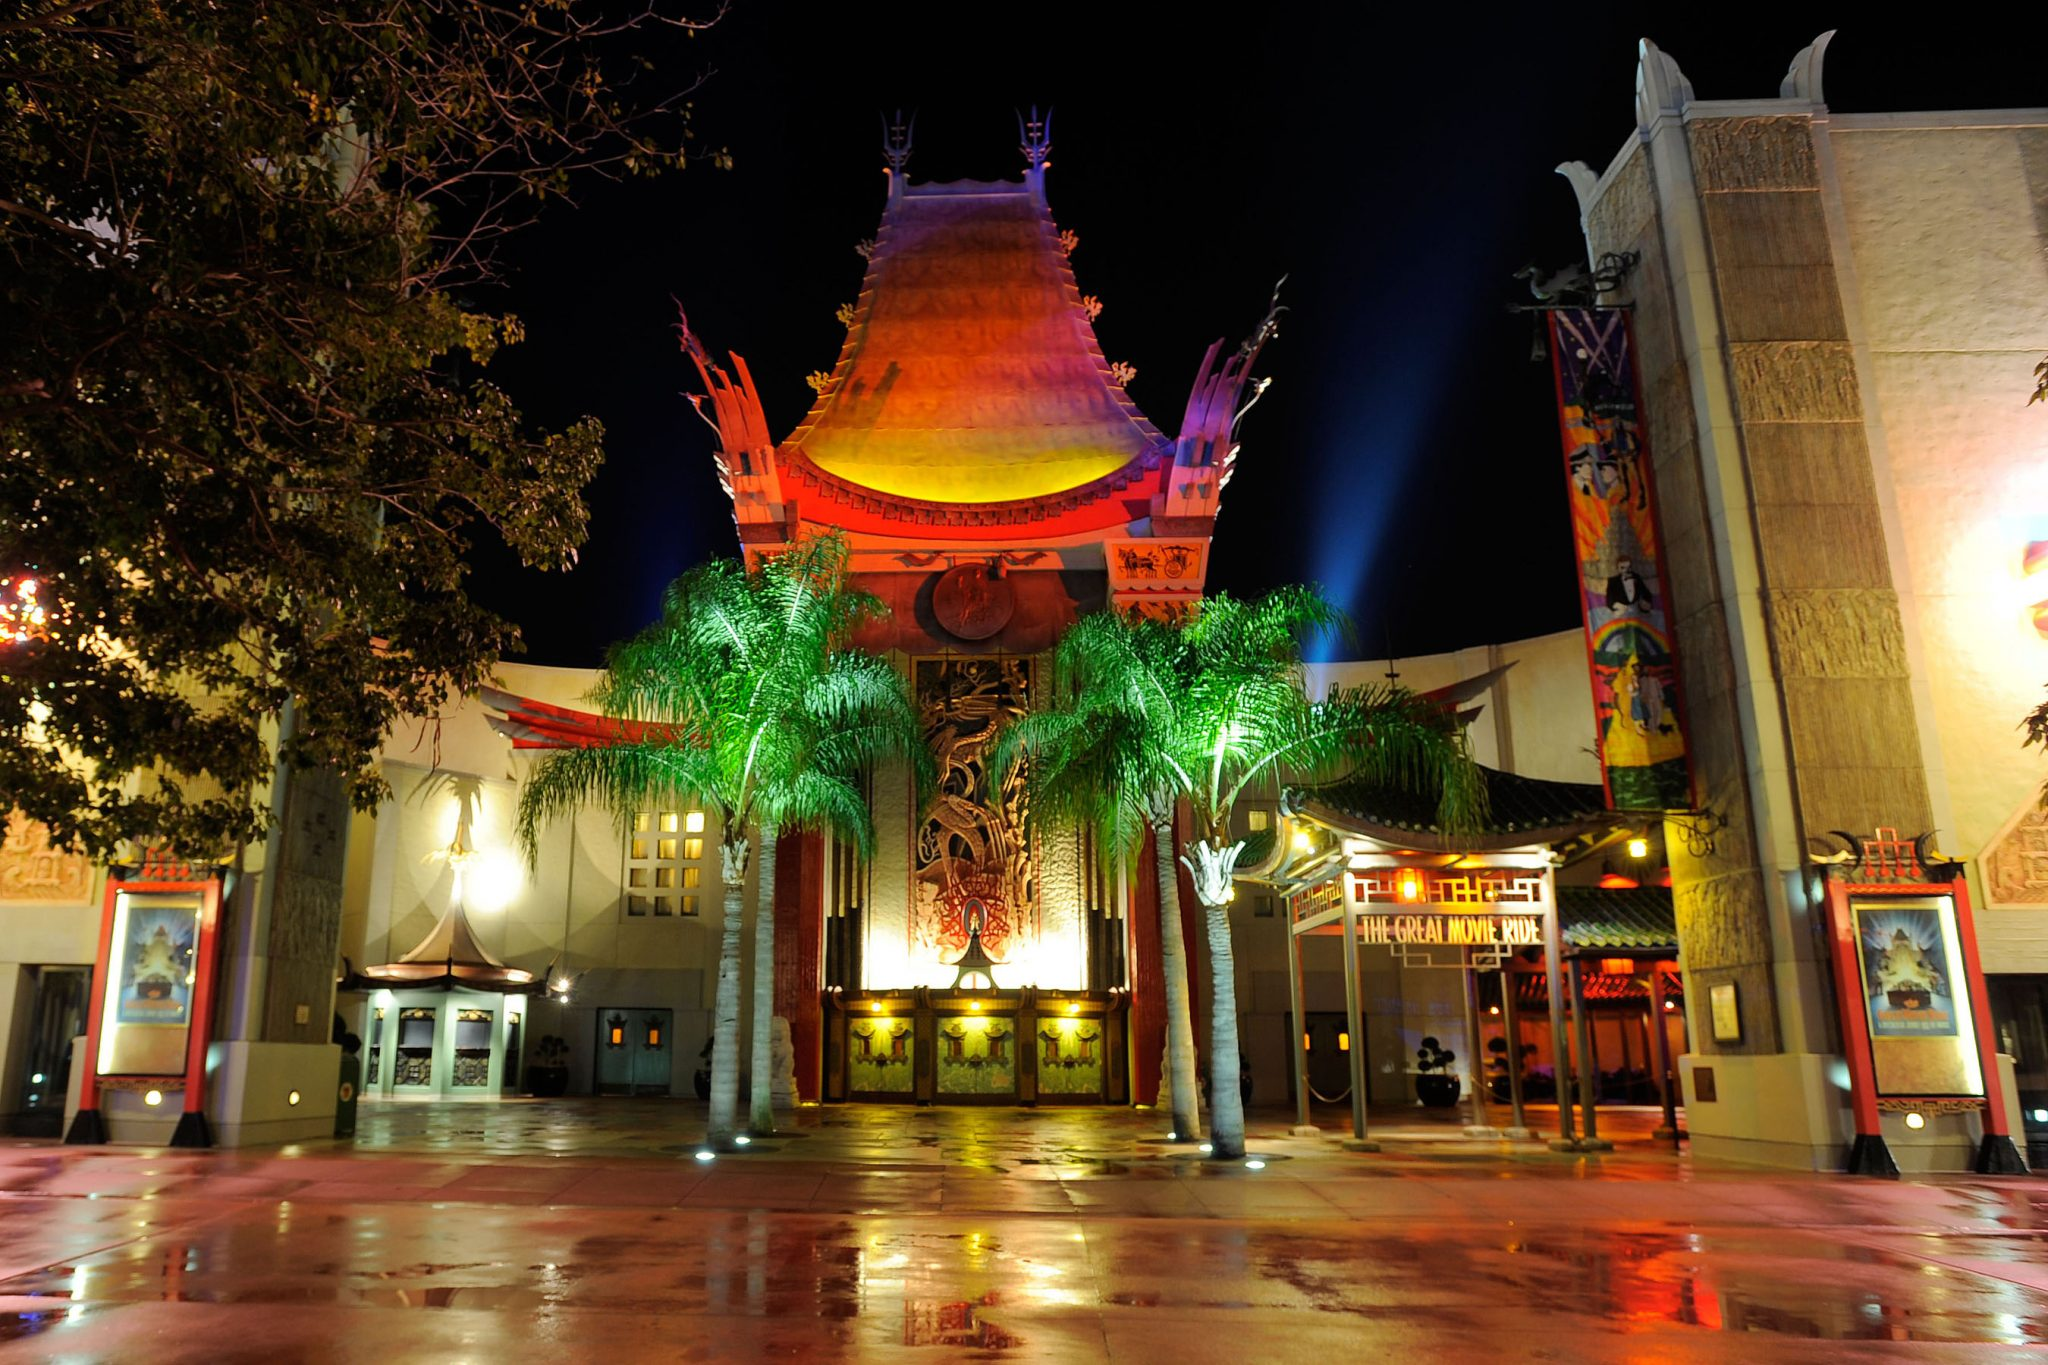 ResortLoop.com Episode 167 – The Great Movie Ride Changes